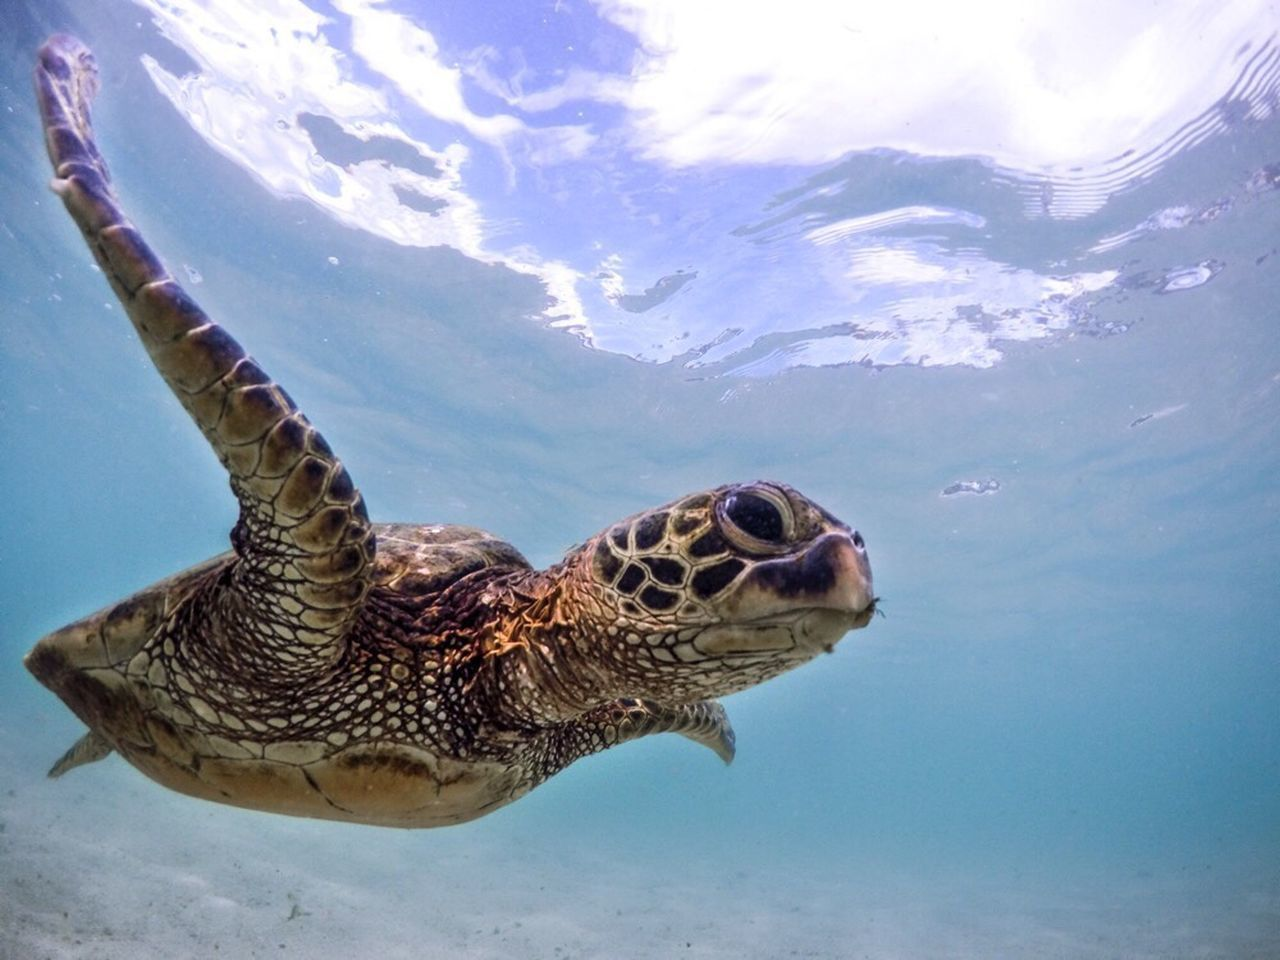 One Animal Animals In The Wild Swimming Nature Sea Turtle UnderSea Sea Life No People Water Day Outdoors Beauty In Nature Animal Themes Hawaii Tropical Paradise